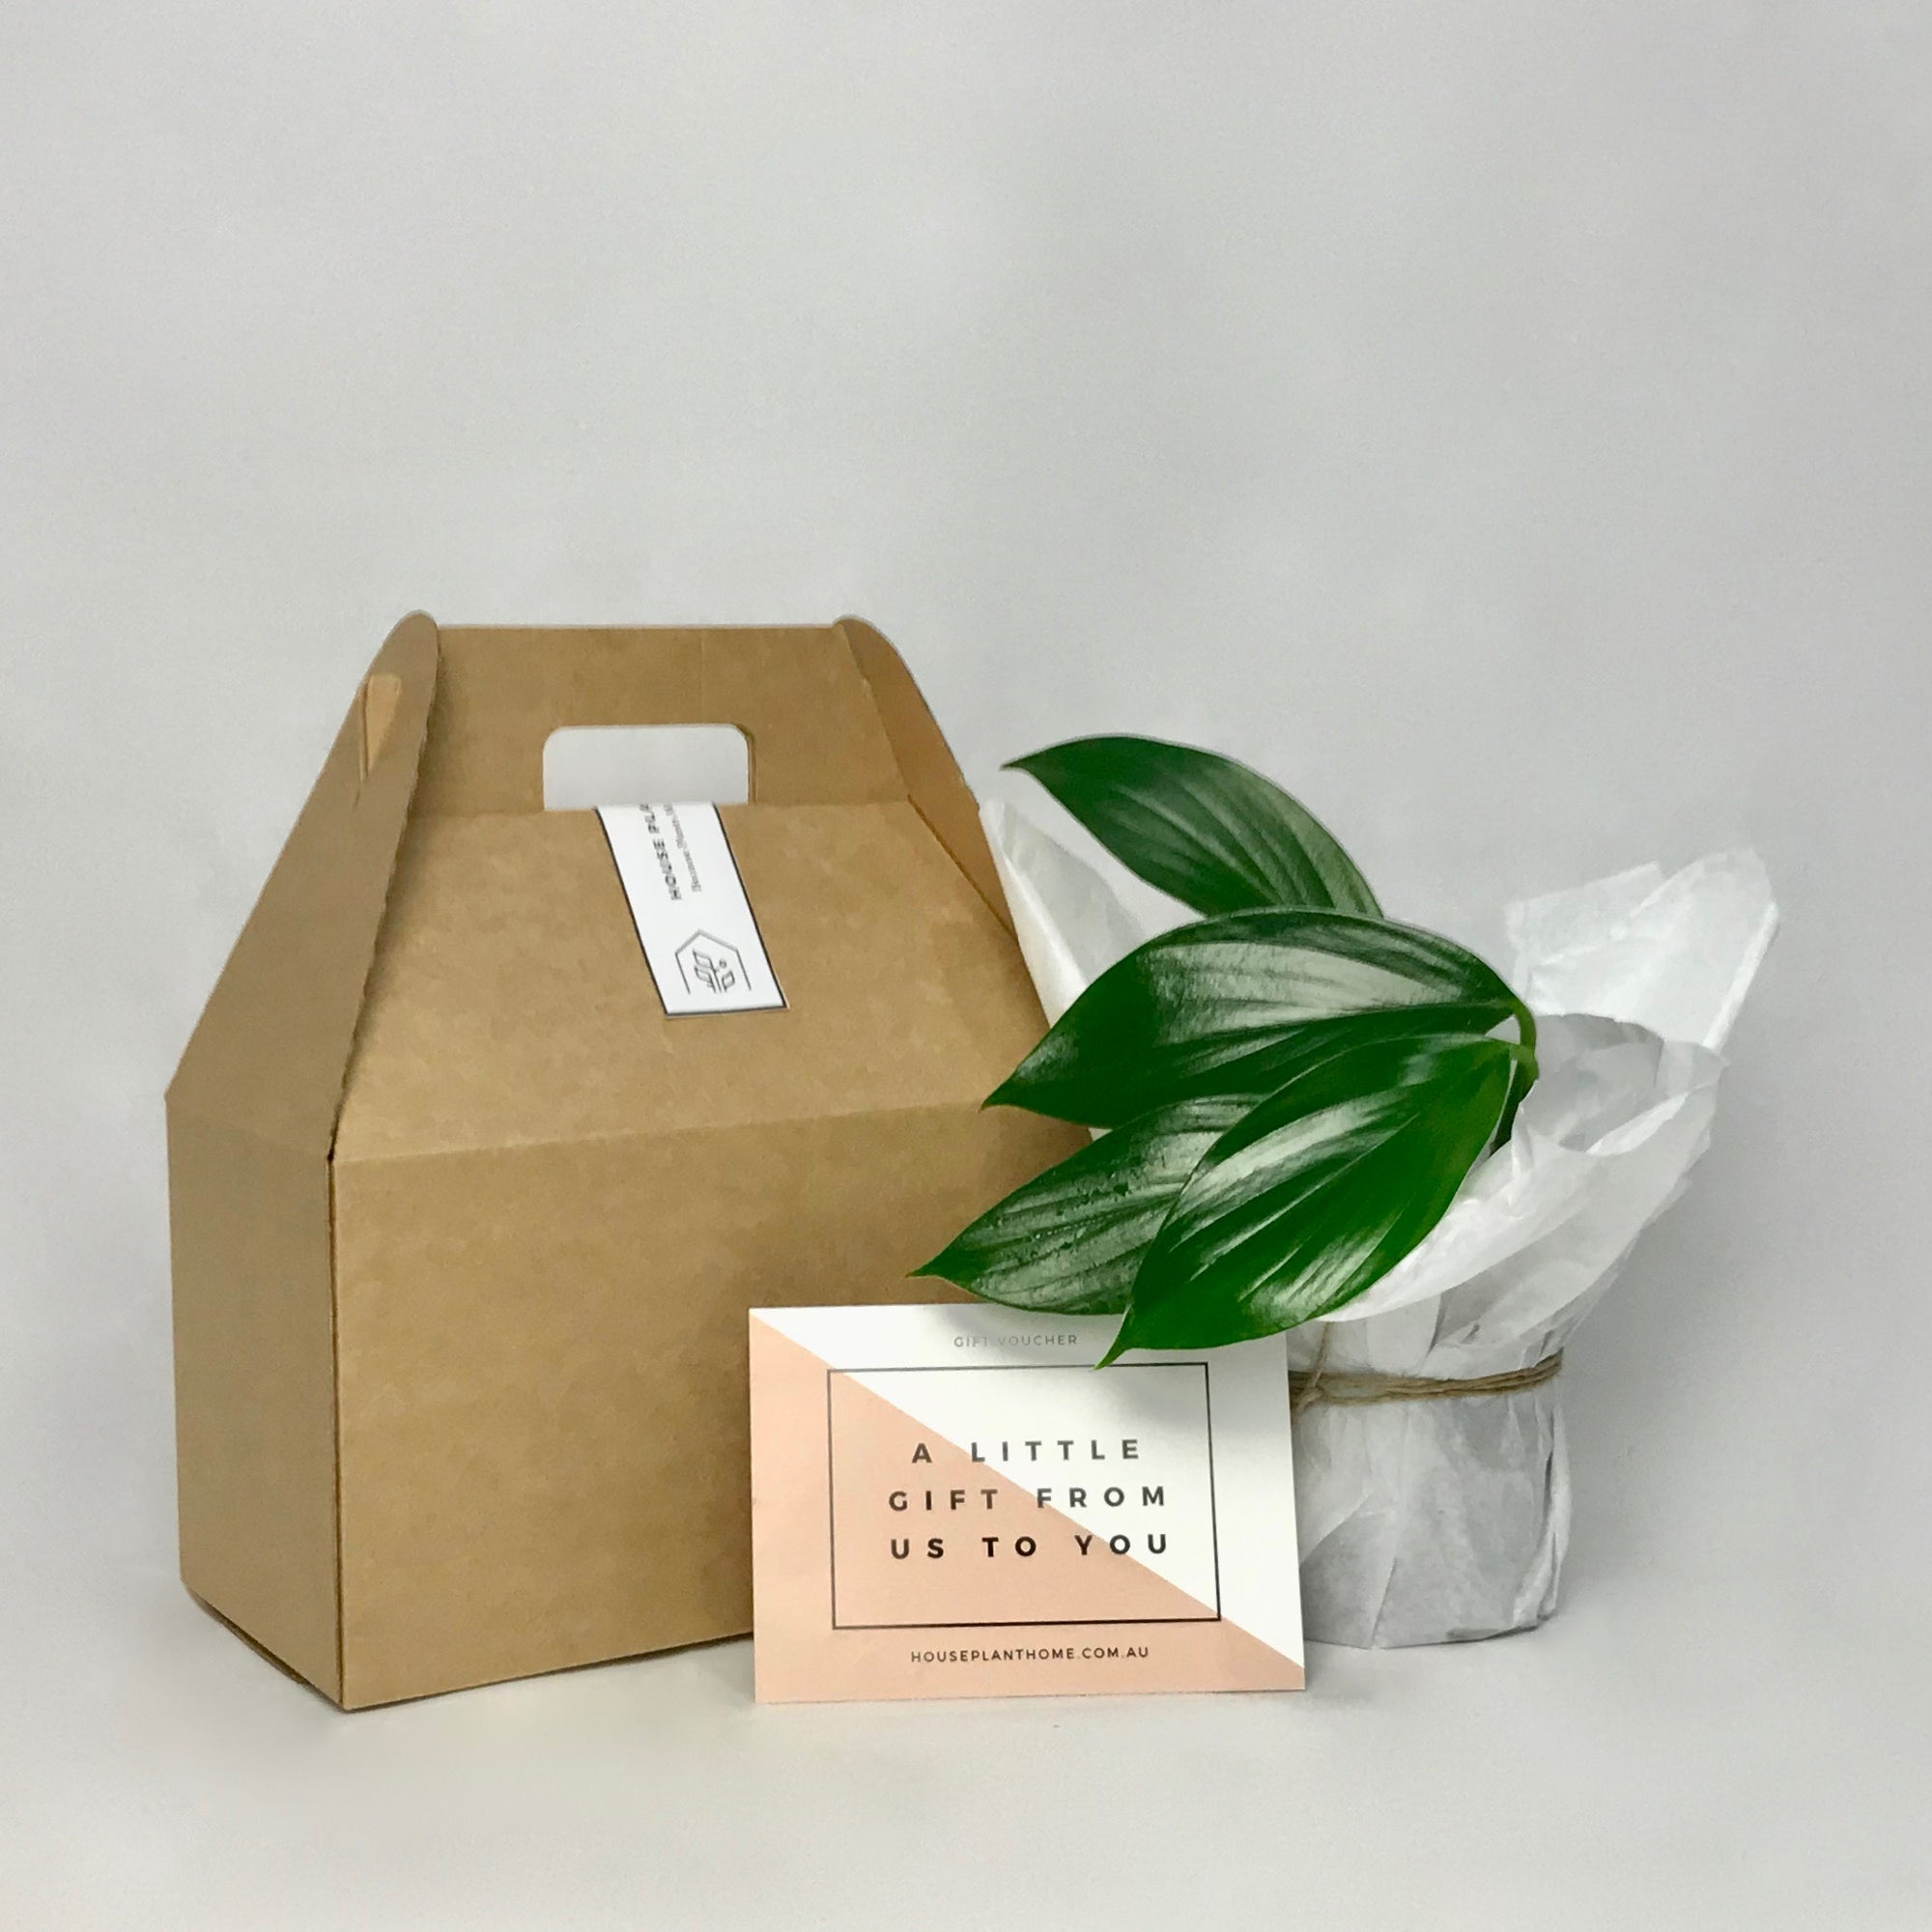 [best_indoor_plants][plants_online][online_ plant_gift], [plant_ gifts], [houseplant gifts], [handmade_ceramics], [plant_delivery_ melbourne], [living_ gifts]- House Plant Home